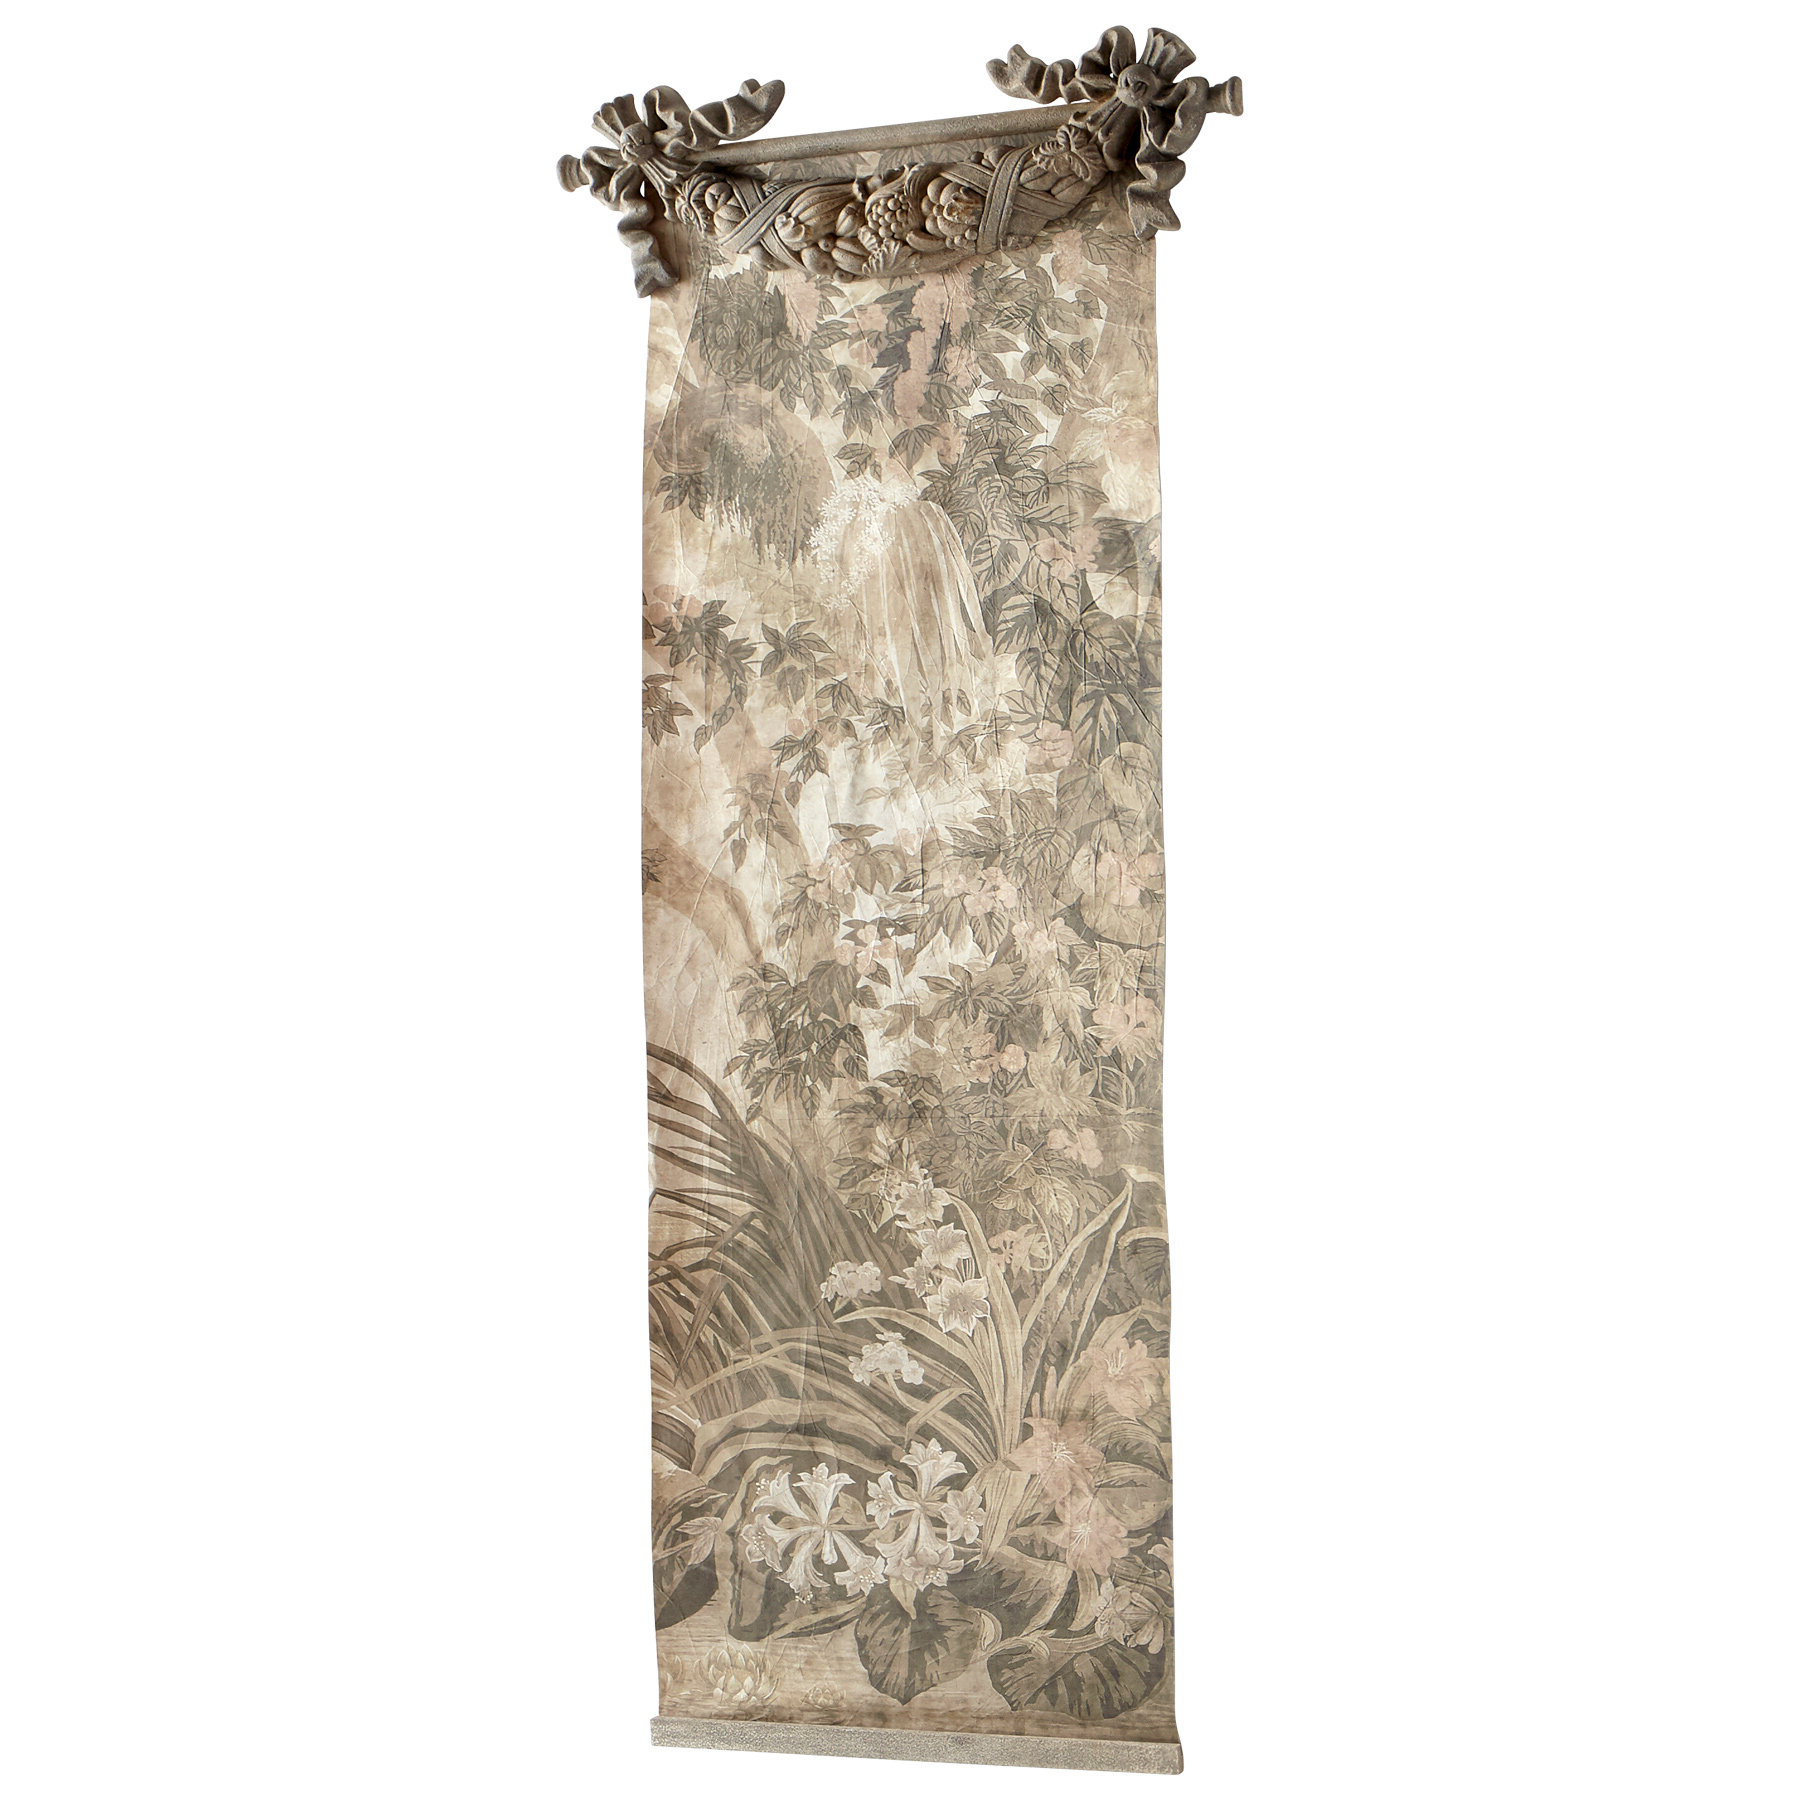 Blended Fabric Mucha Spring European Wall Hangings For Well Known Blended Fabric Havenwood Chinoiserie Tapestry Rod Included (View 14 of 20)